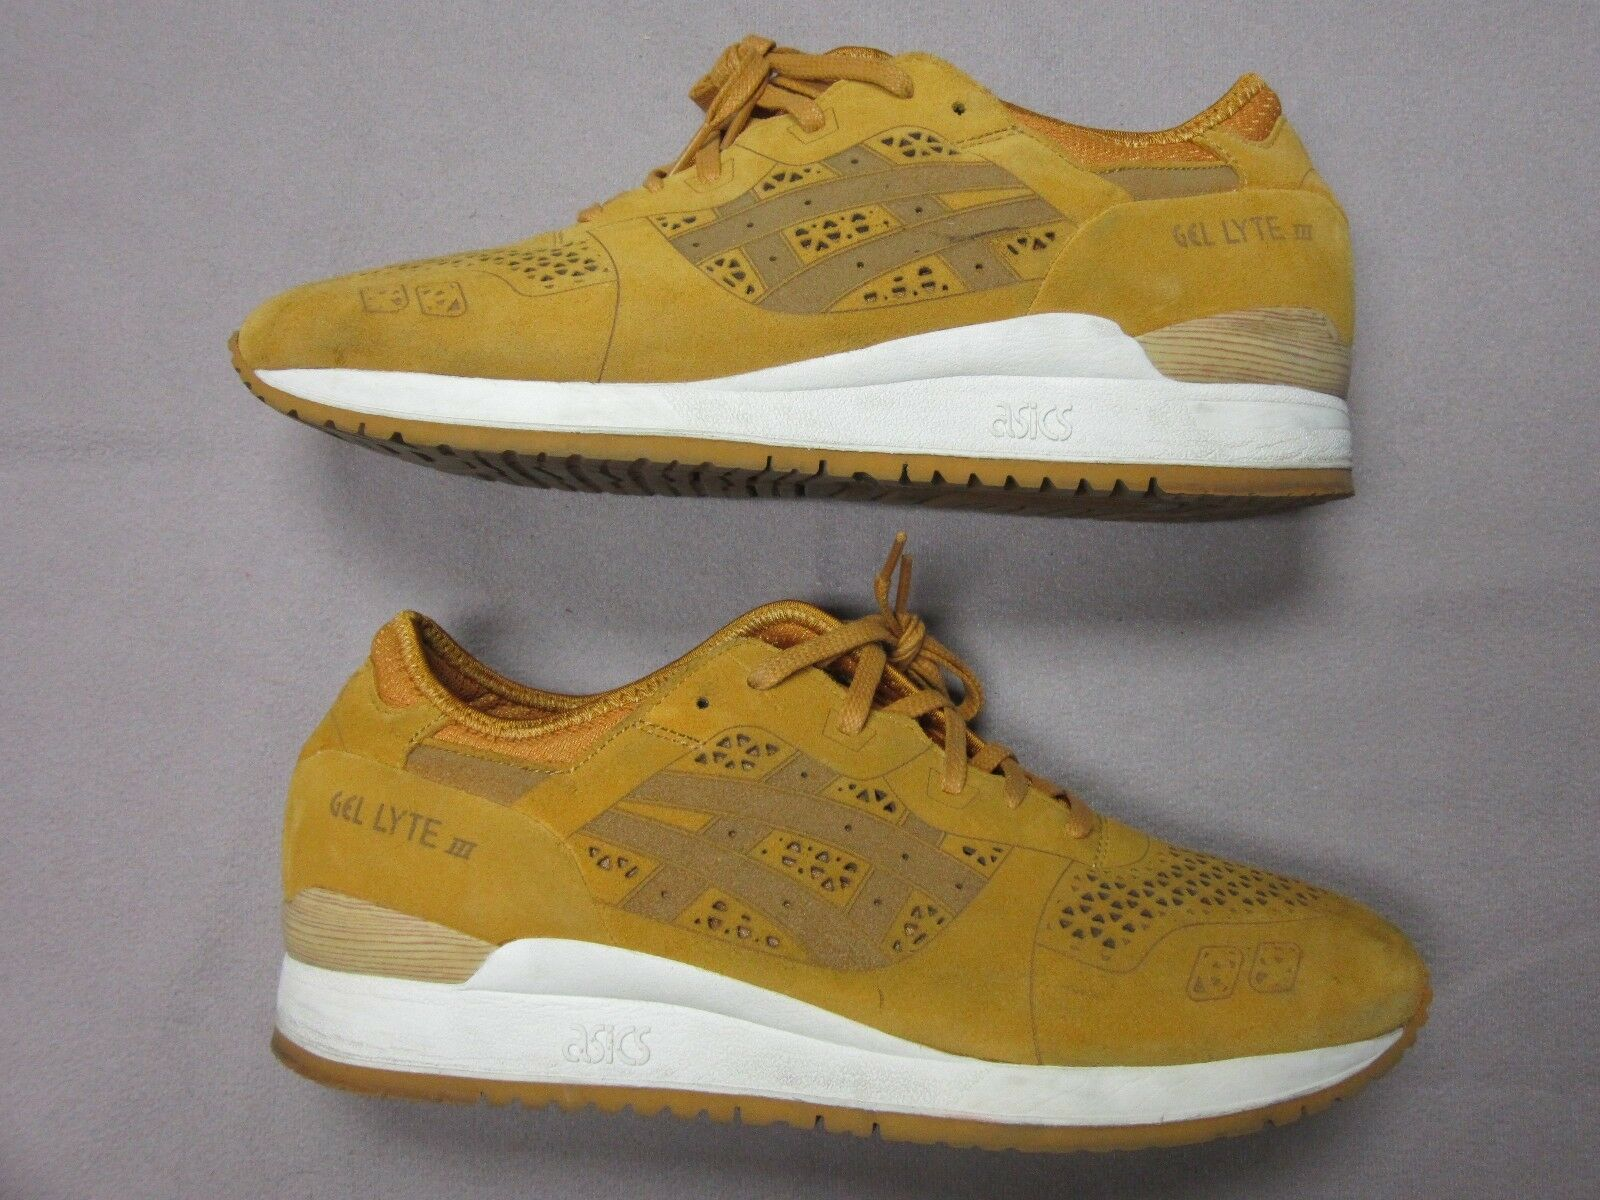 ASICS MENS GEL LYTE III LASER CUT gold WHEAT SUEDE SNEAKER SHOES SIZE 11.5 RARE